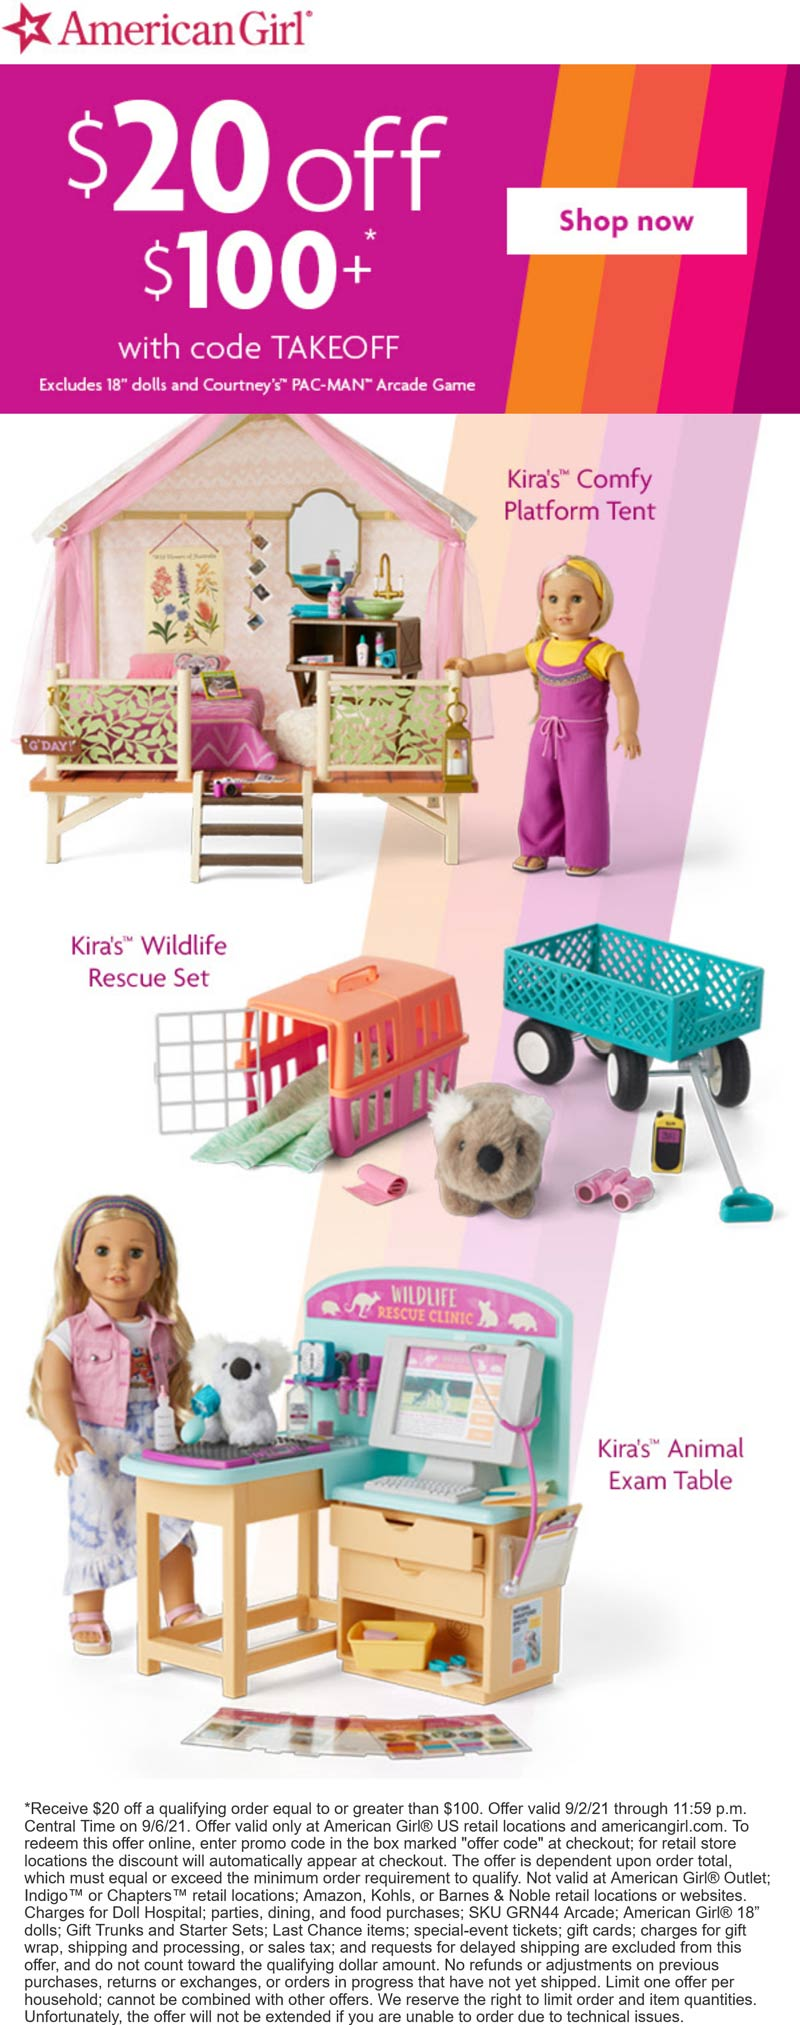 American Girl stores Coupon  $20 off $100 today at American Girl via promo code TAKEOFF #americangirl